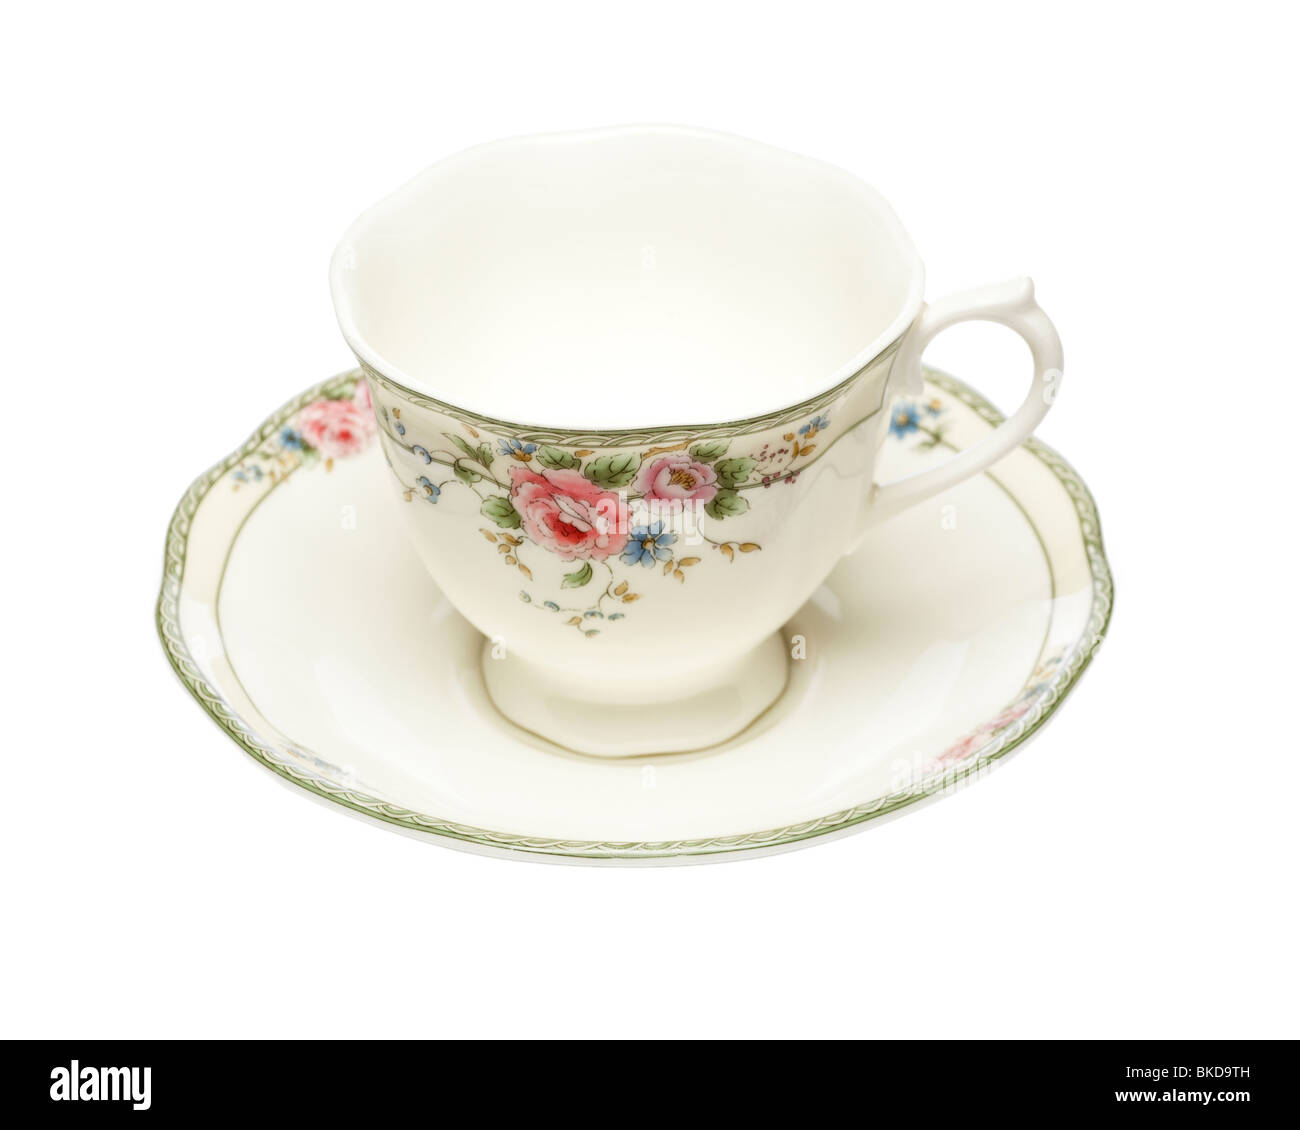 Empty fine bone china decorated cup and saucer - Stock Image